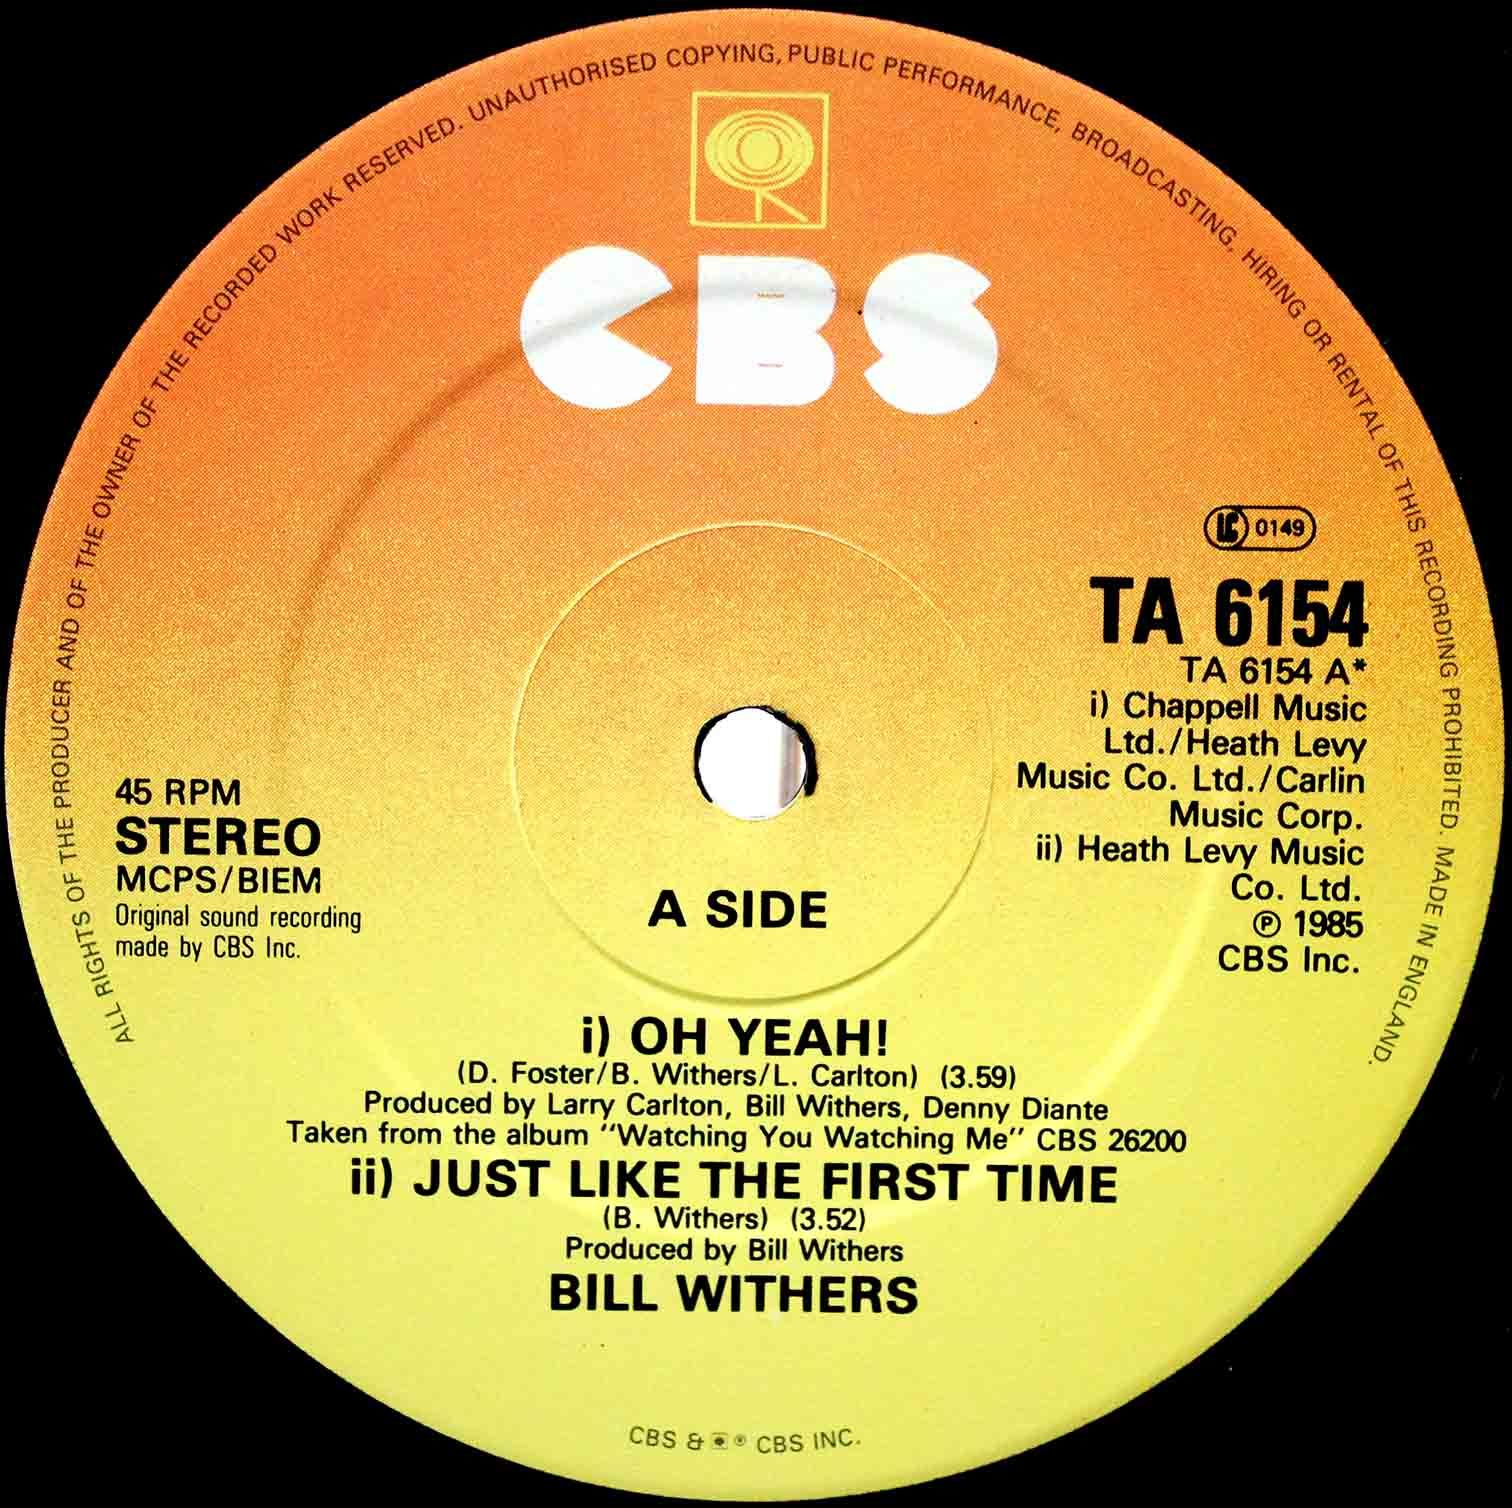 Bill Withers – Oh Yeah! 03